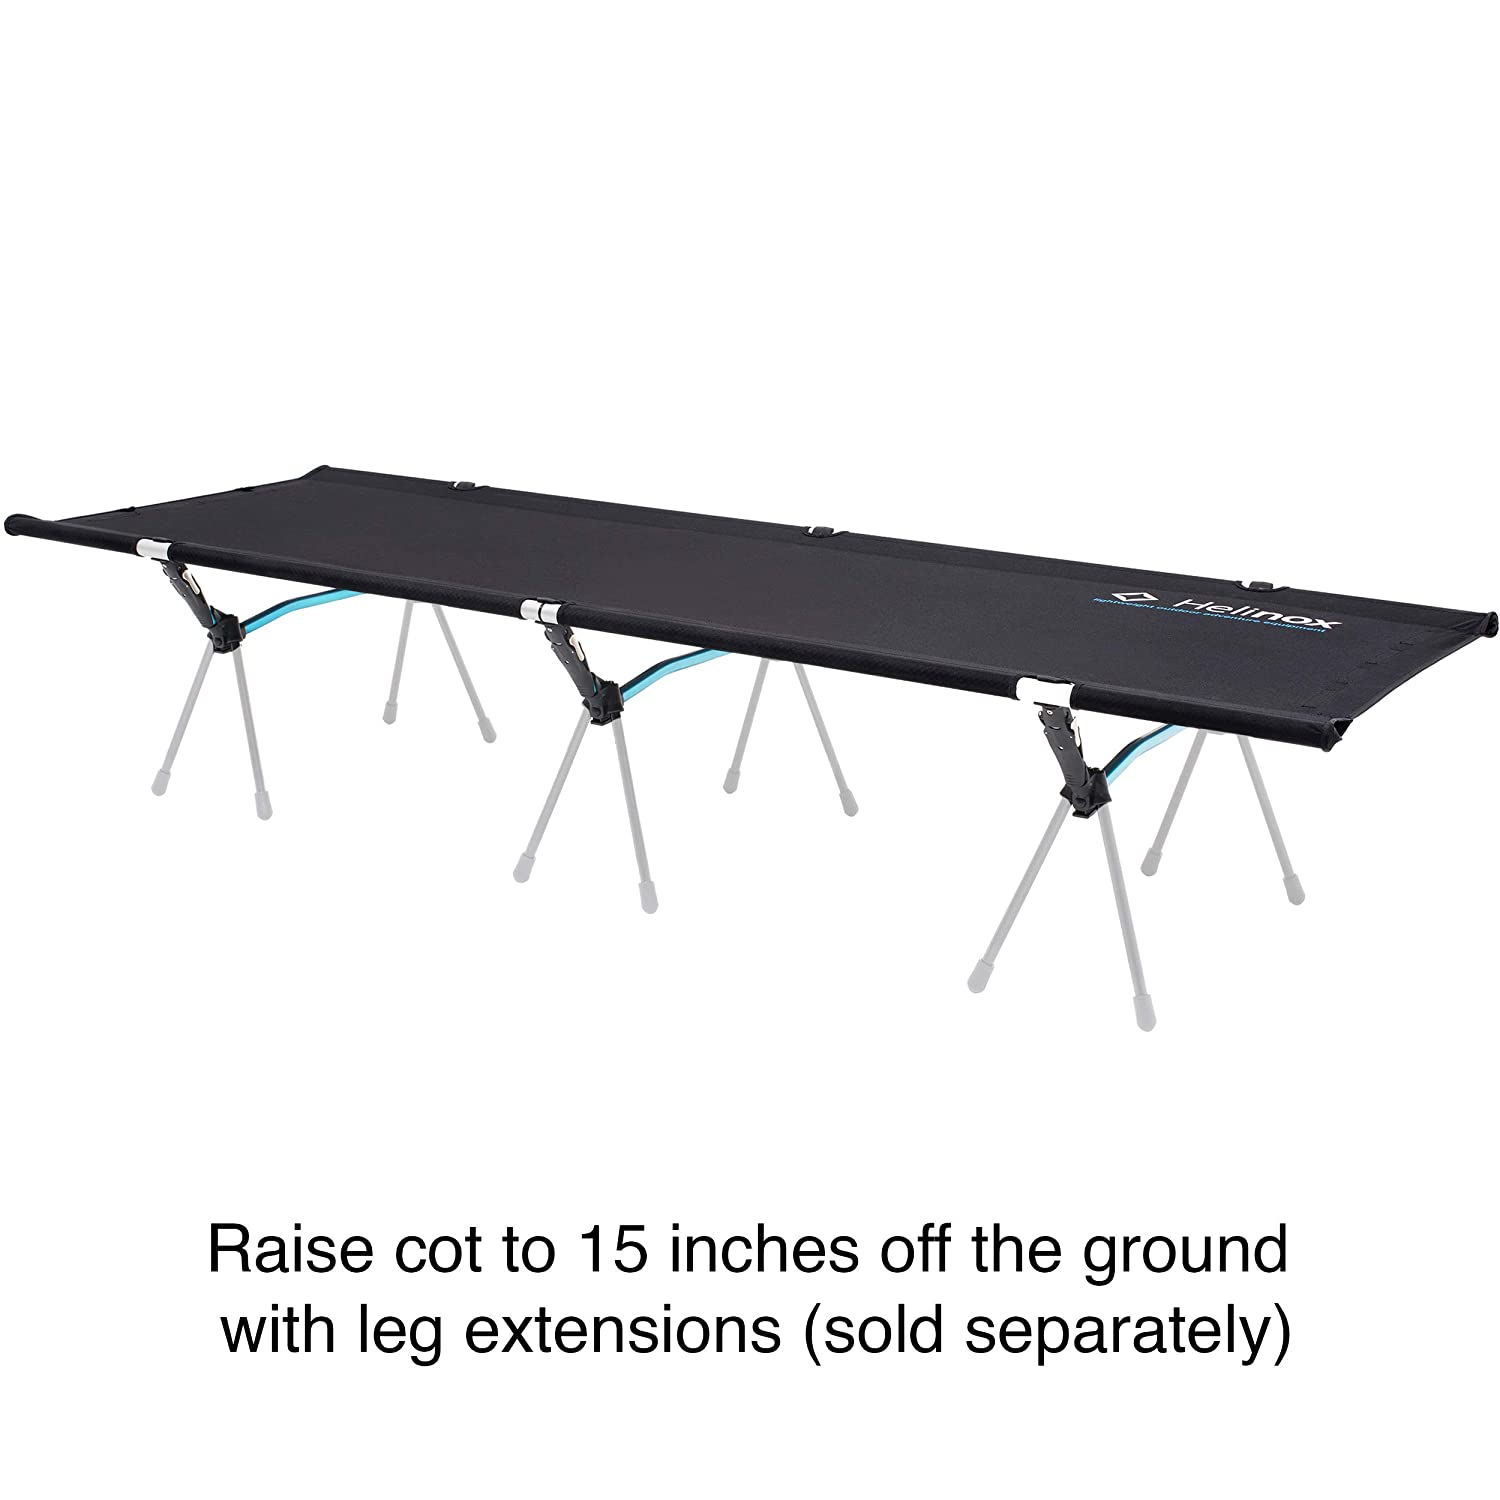 Adjustable Helinox COT ONE CONVERTIBLE Lightweight Black Compact Portable Camping Cot Collapsible